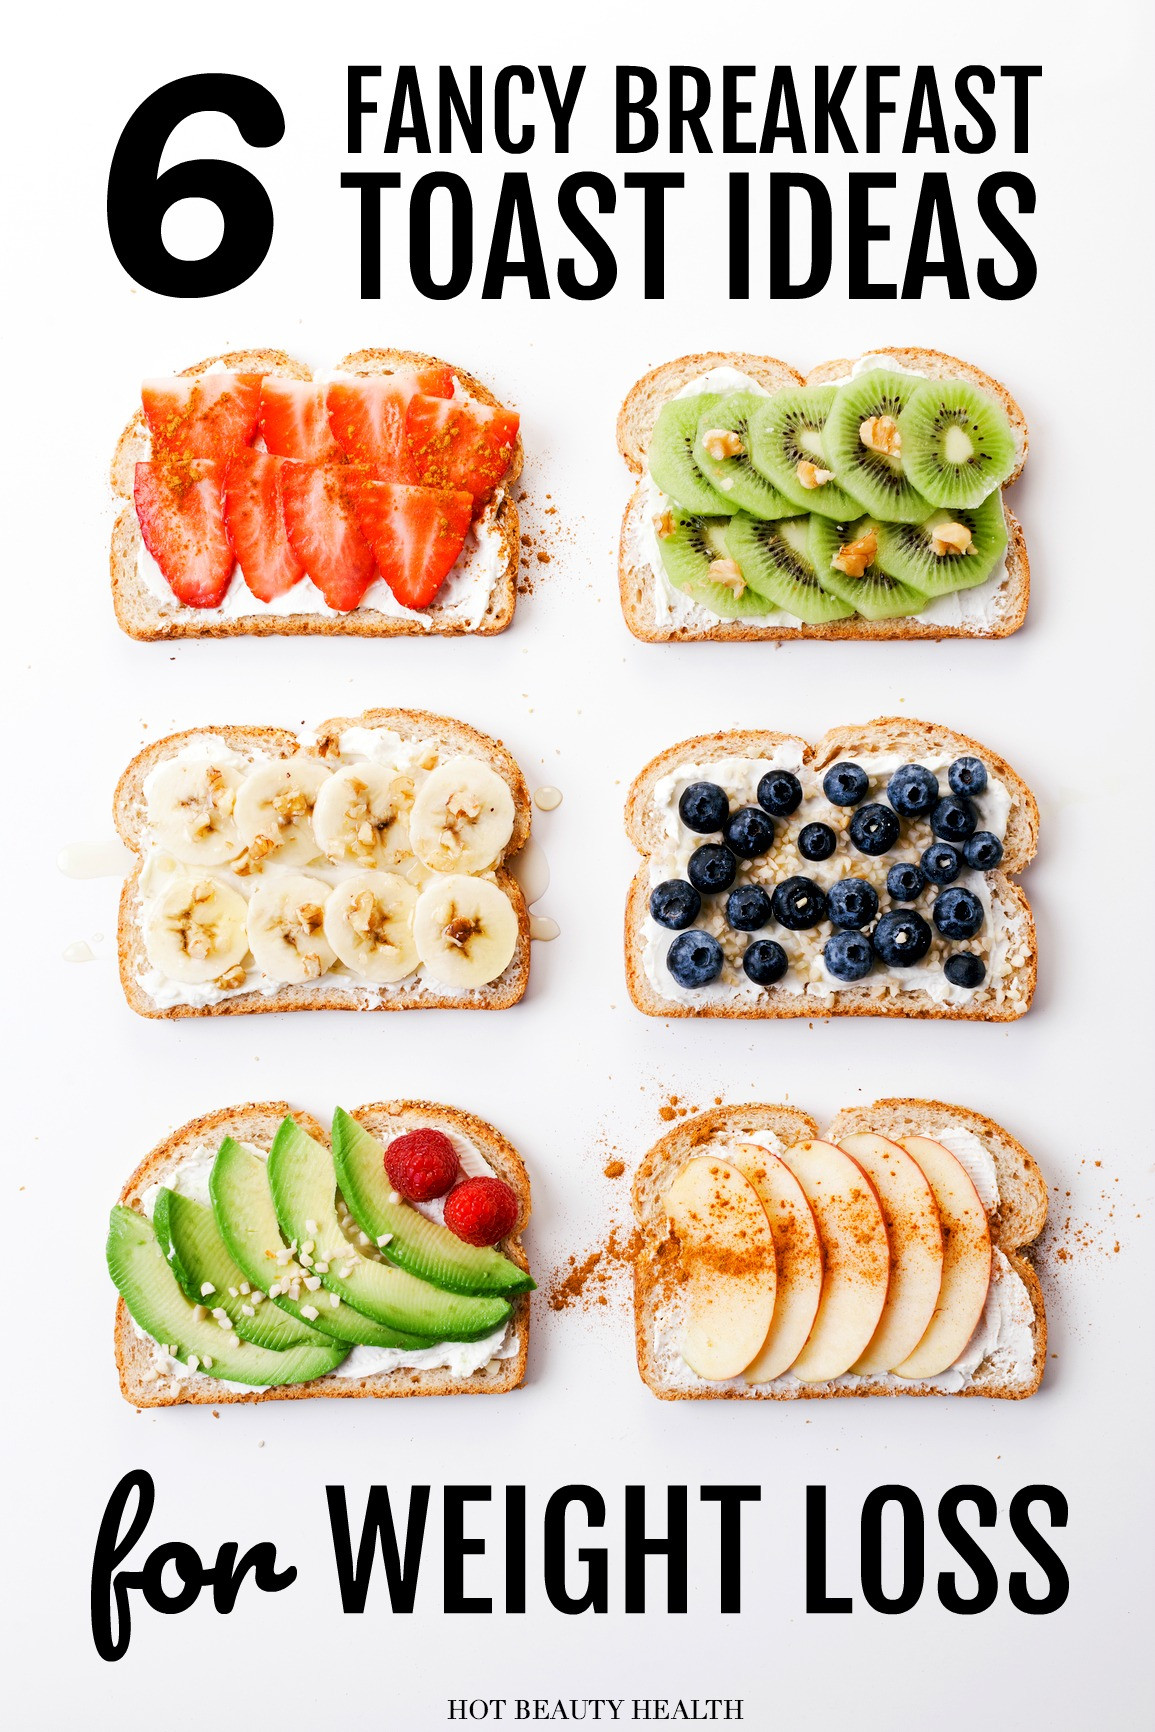 Healthy Breakfast Recipes For Weight Loss  6 Easy & Creative Ways to Fancy Up Breakfast Toasts Hot